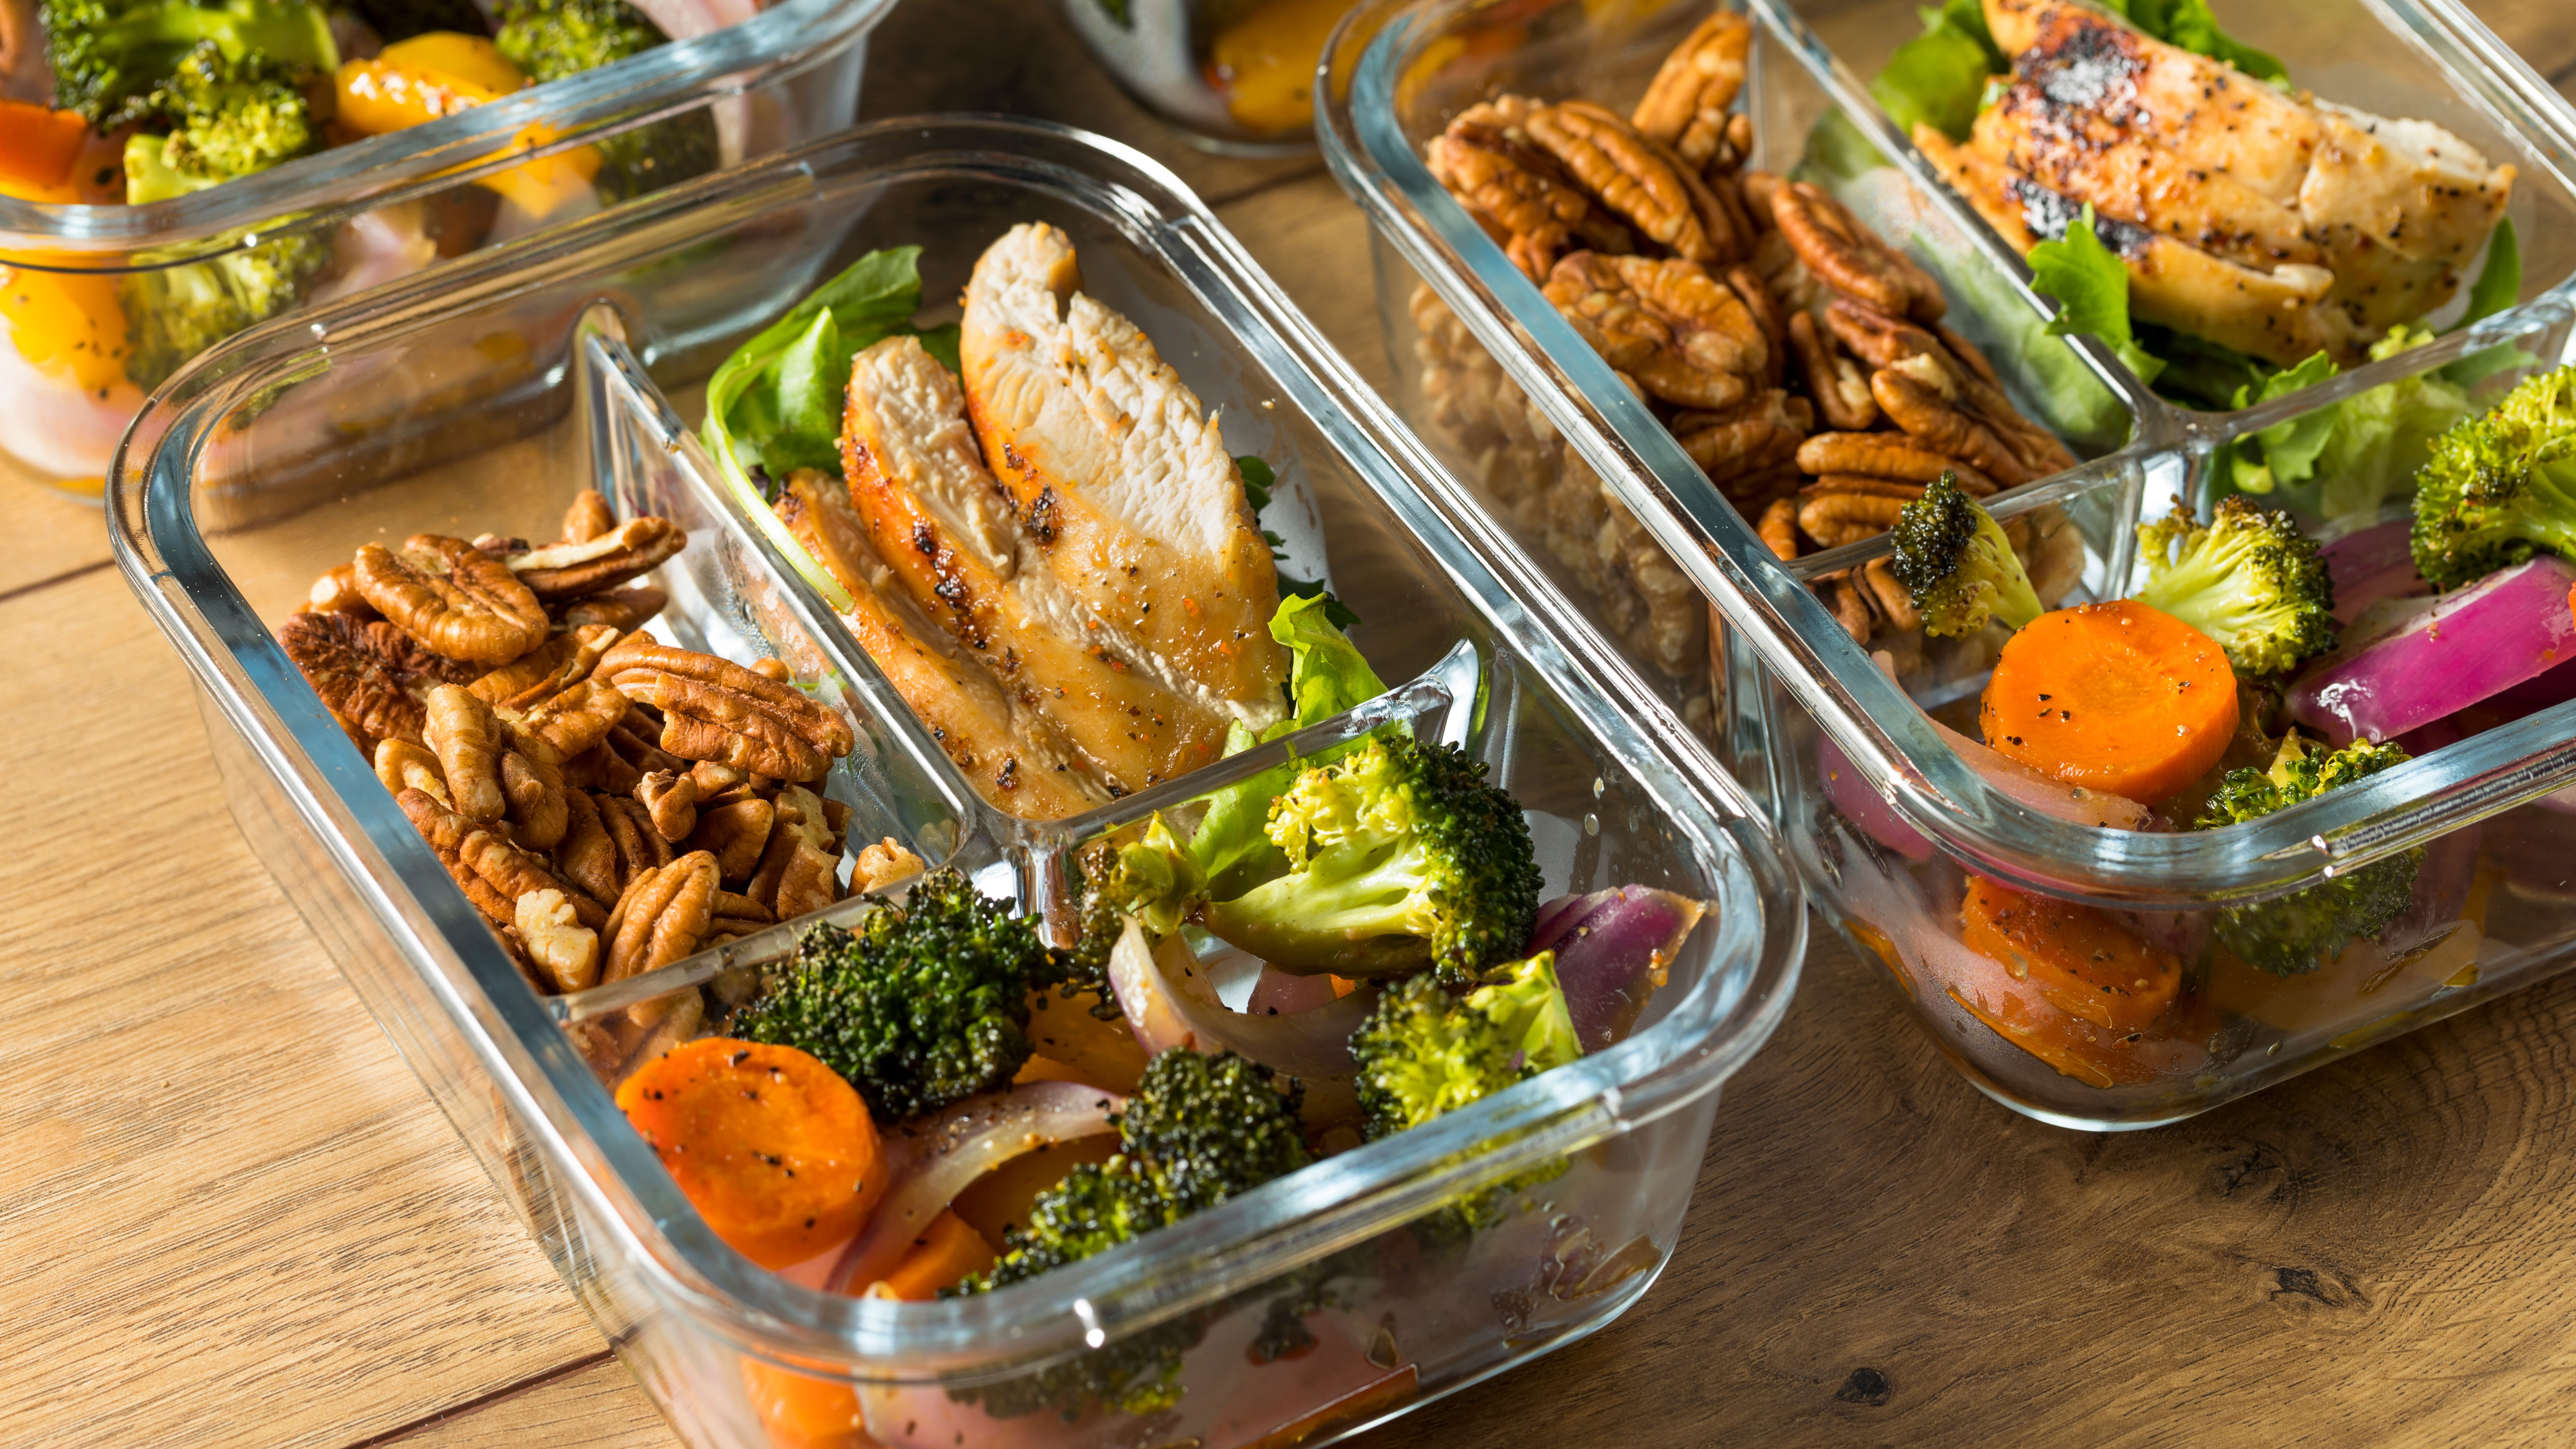 The Real Key To Meal Prep Is Freezing Everything